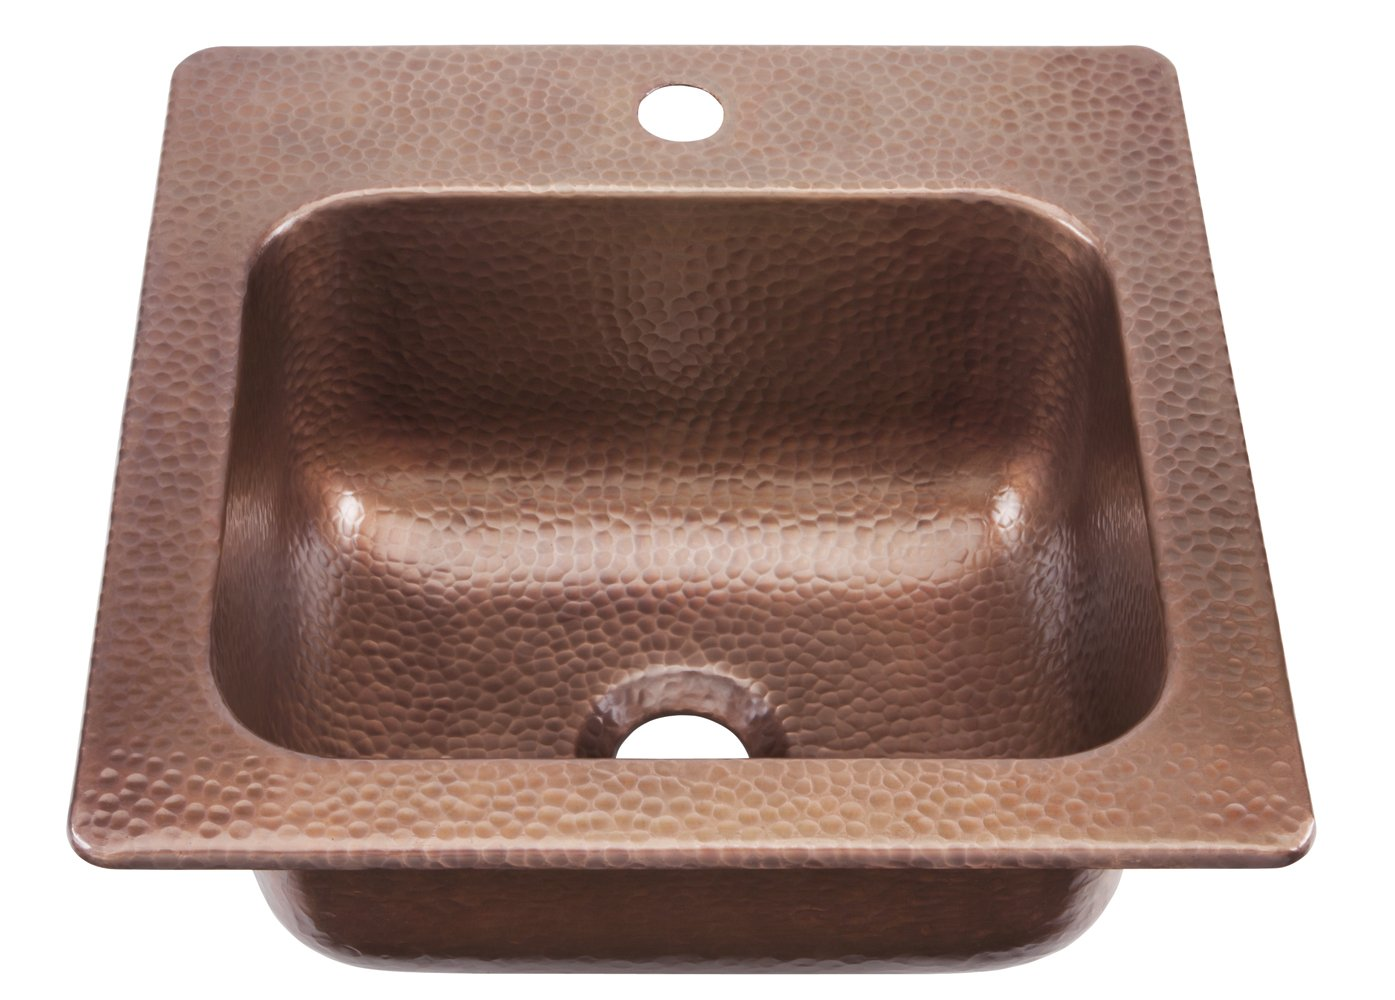 Sinkology KPD-1515HA Seurat Drop In Handmade Pure Solid Copper 15 in. 1-Hole Bar Copper Sink in Antique Copper